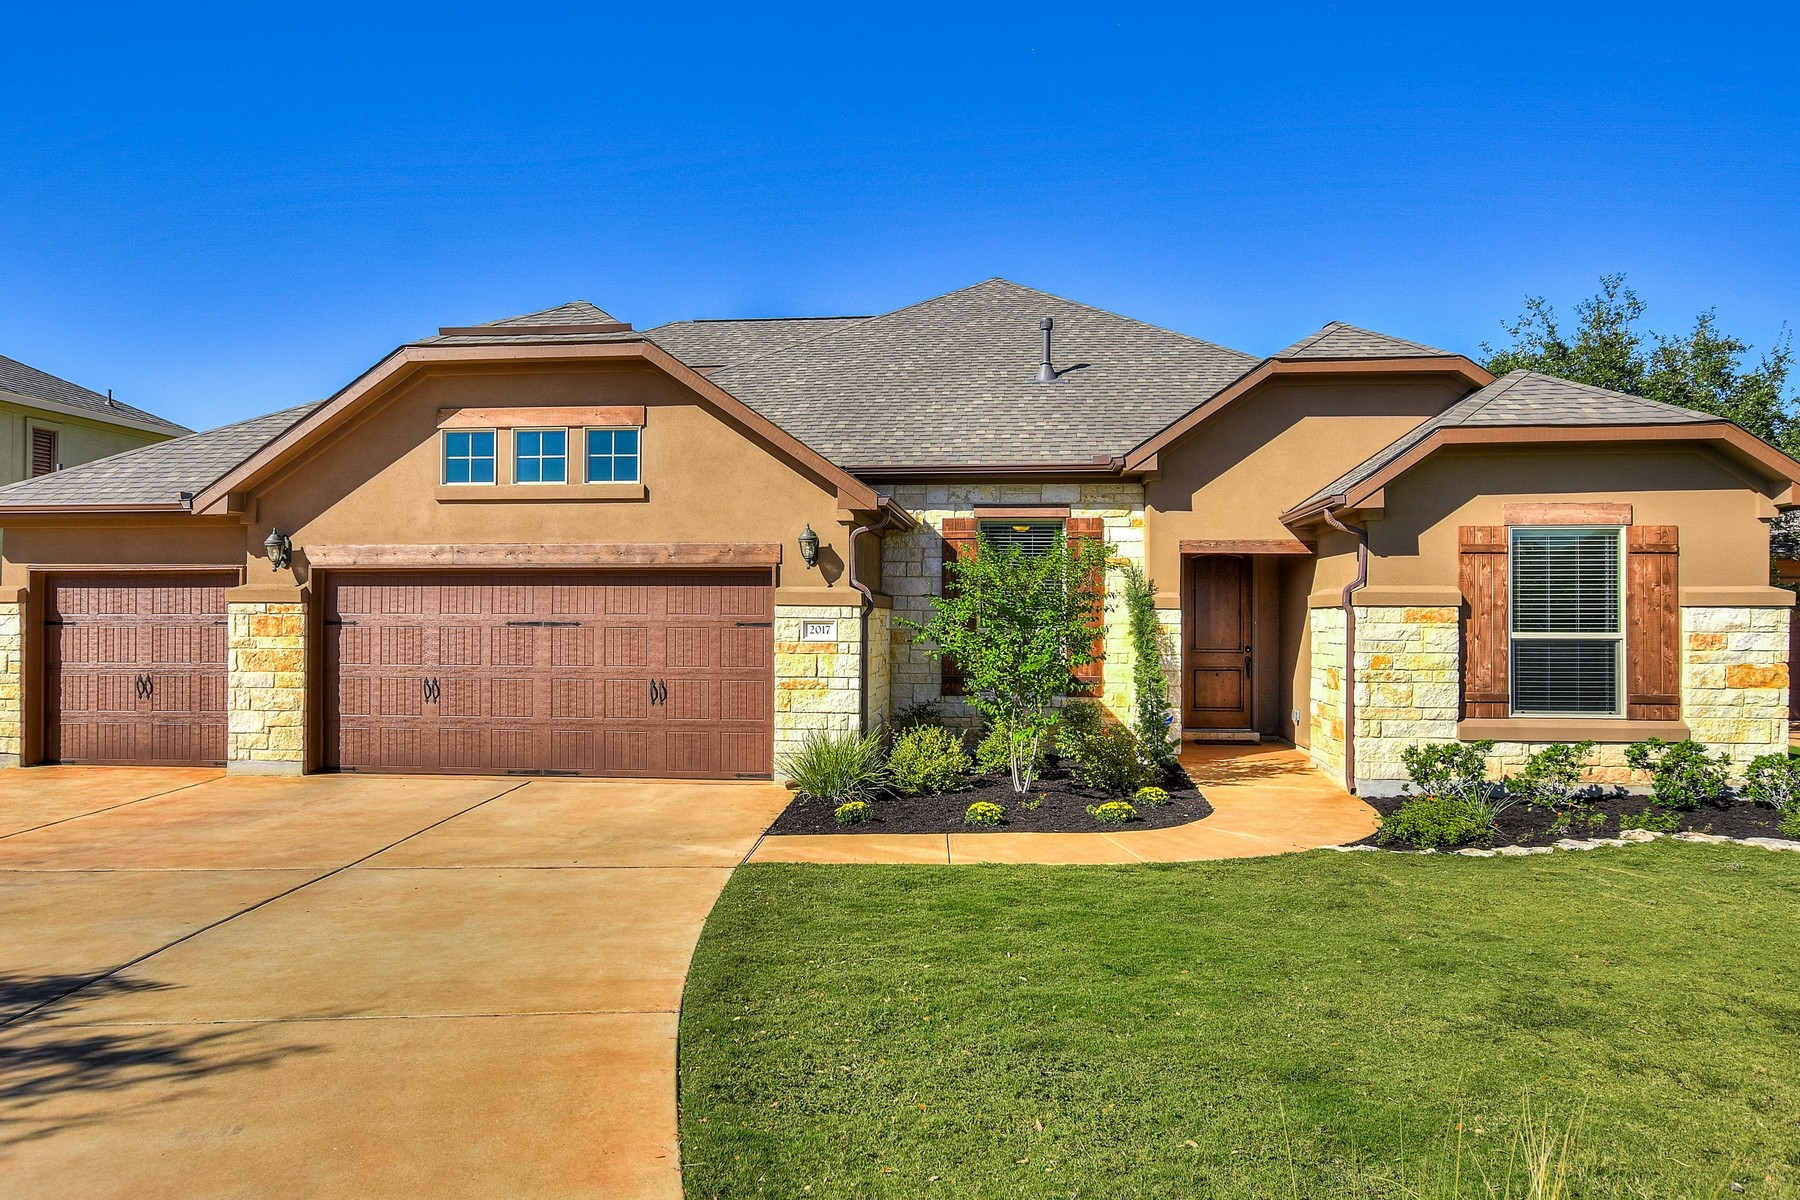 Single Family Home for Sale at Amazing Stone and Stucco Grand Haven Home 2017 Harvest Dance Dr Leander, Texas 78641 United States